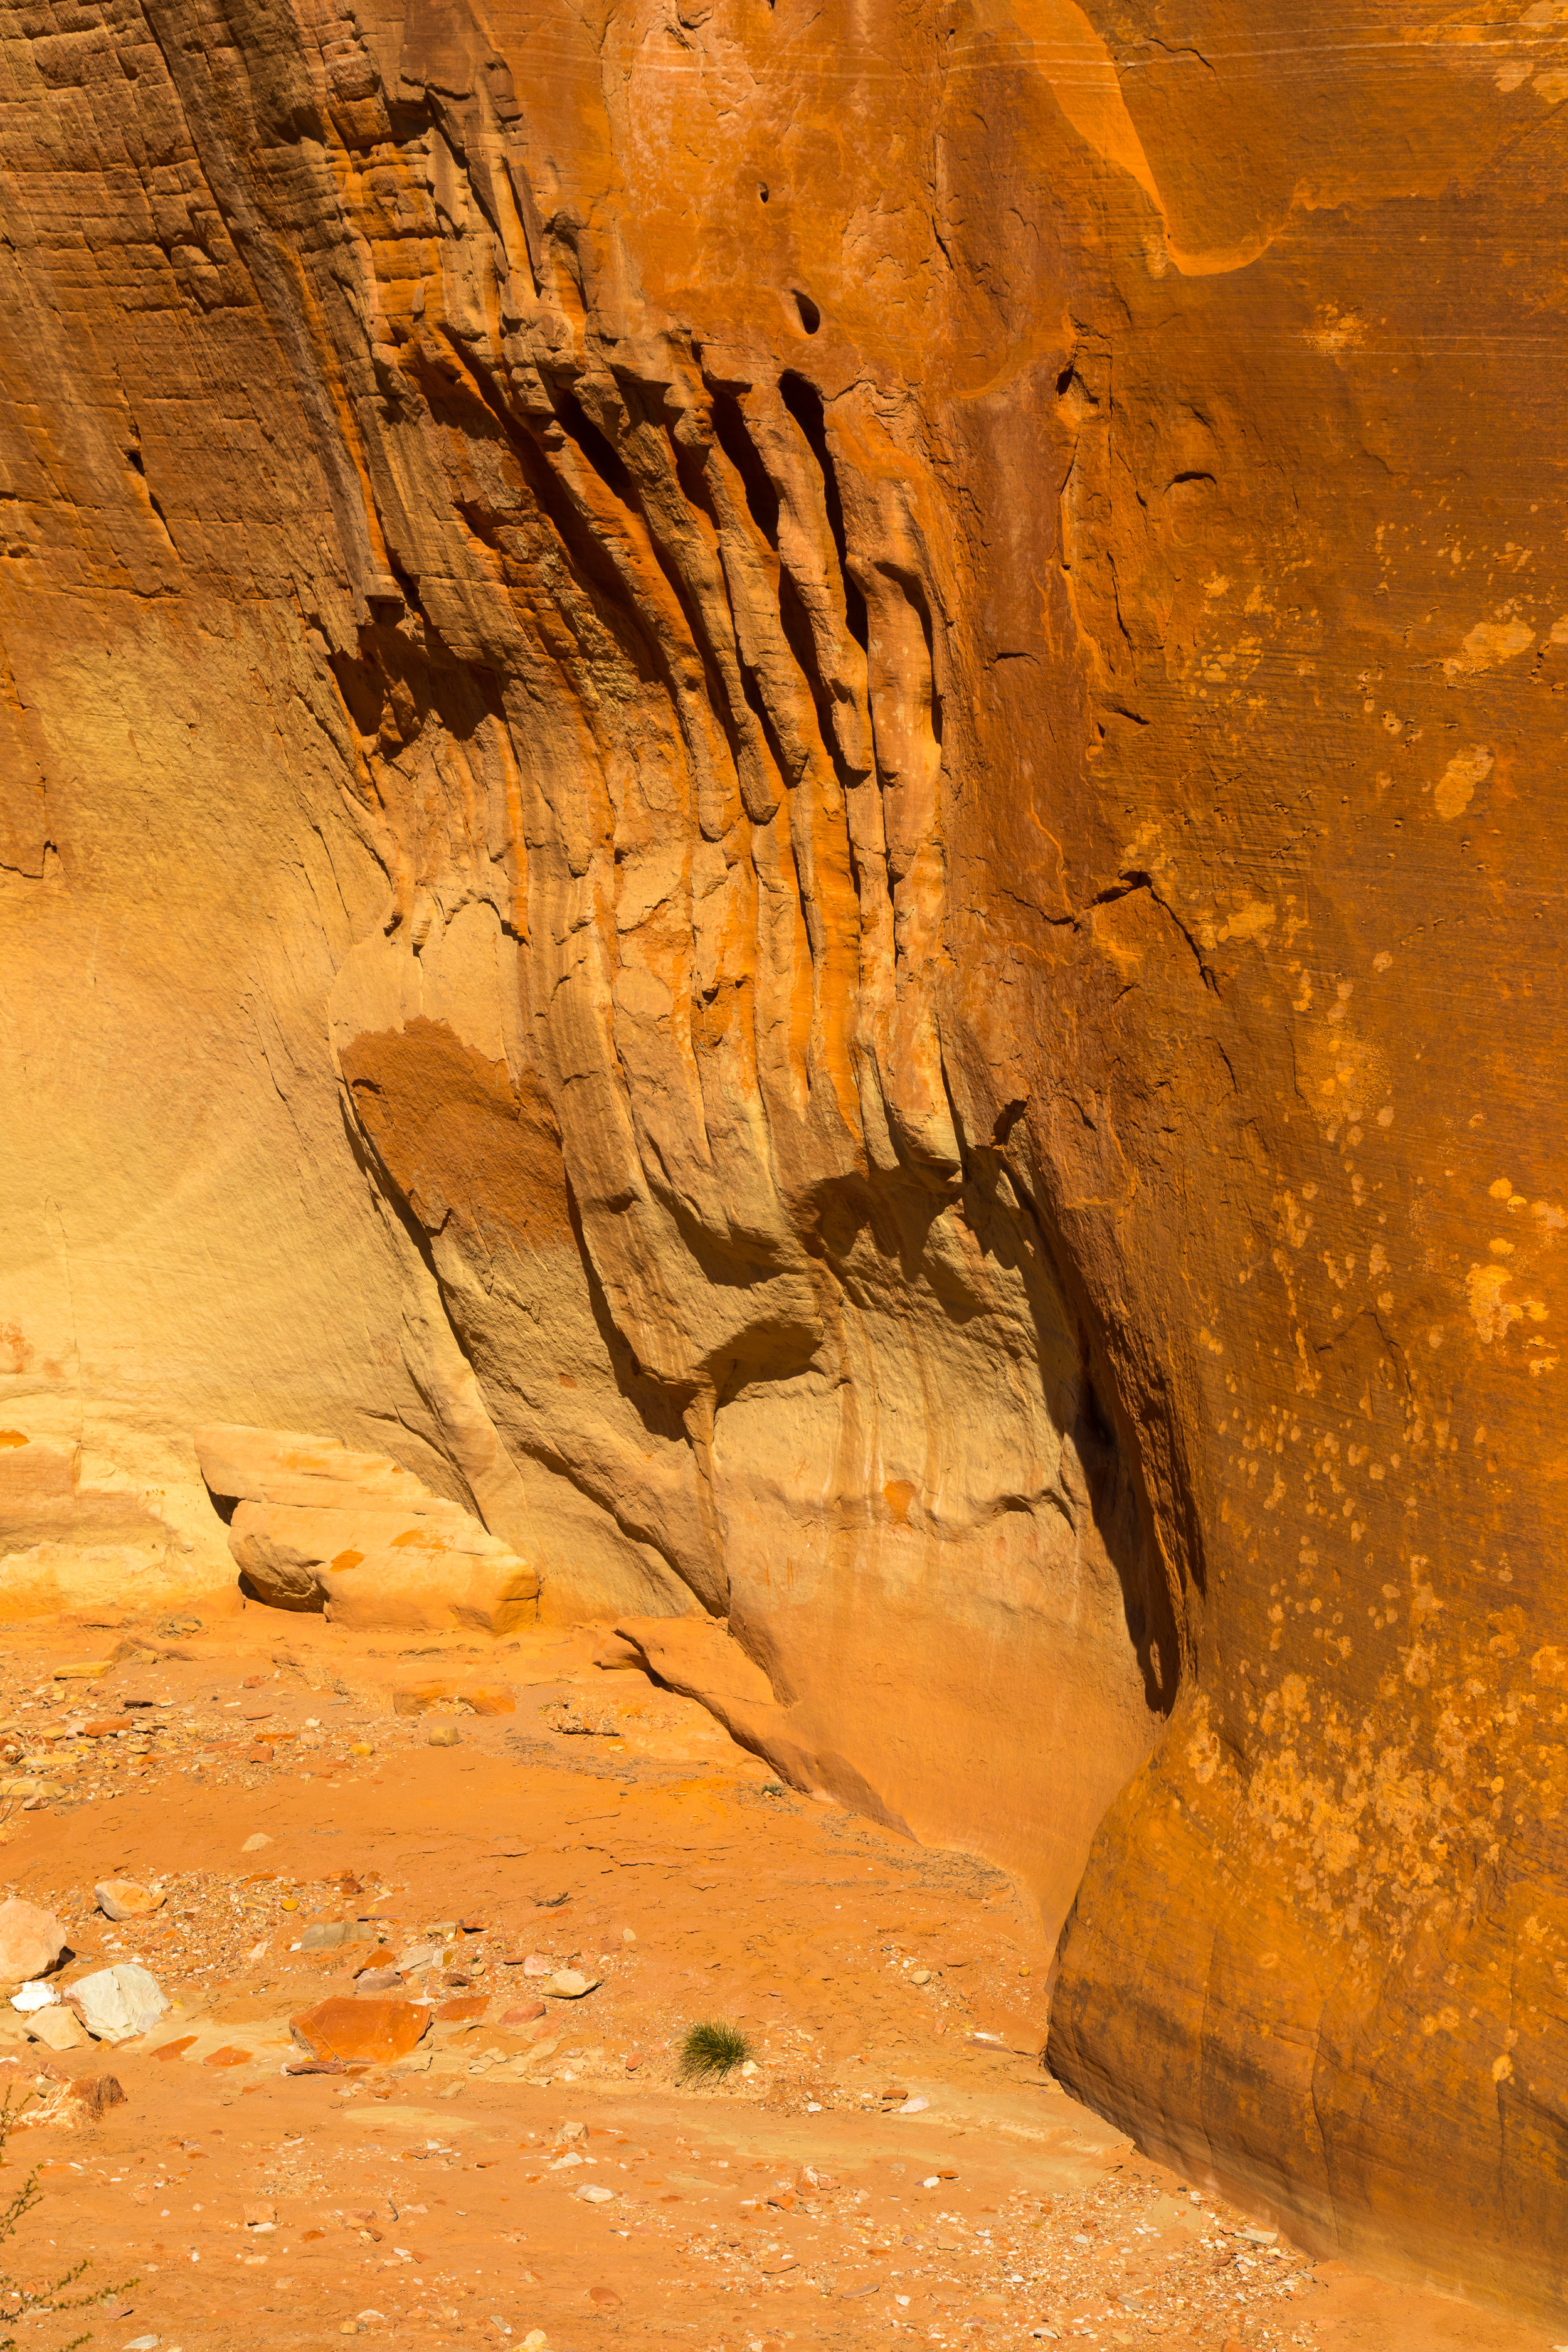 Escalante National Monument, Image # 6652